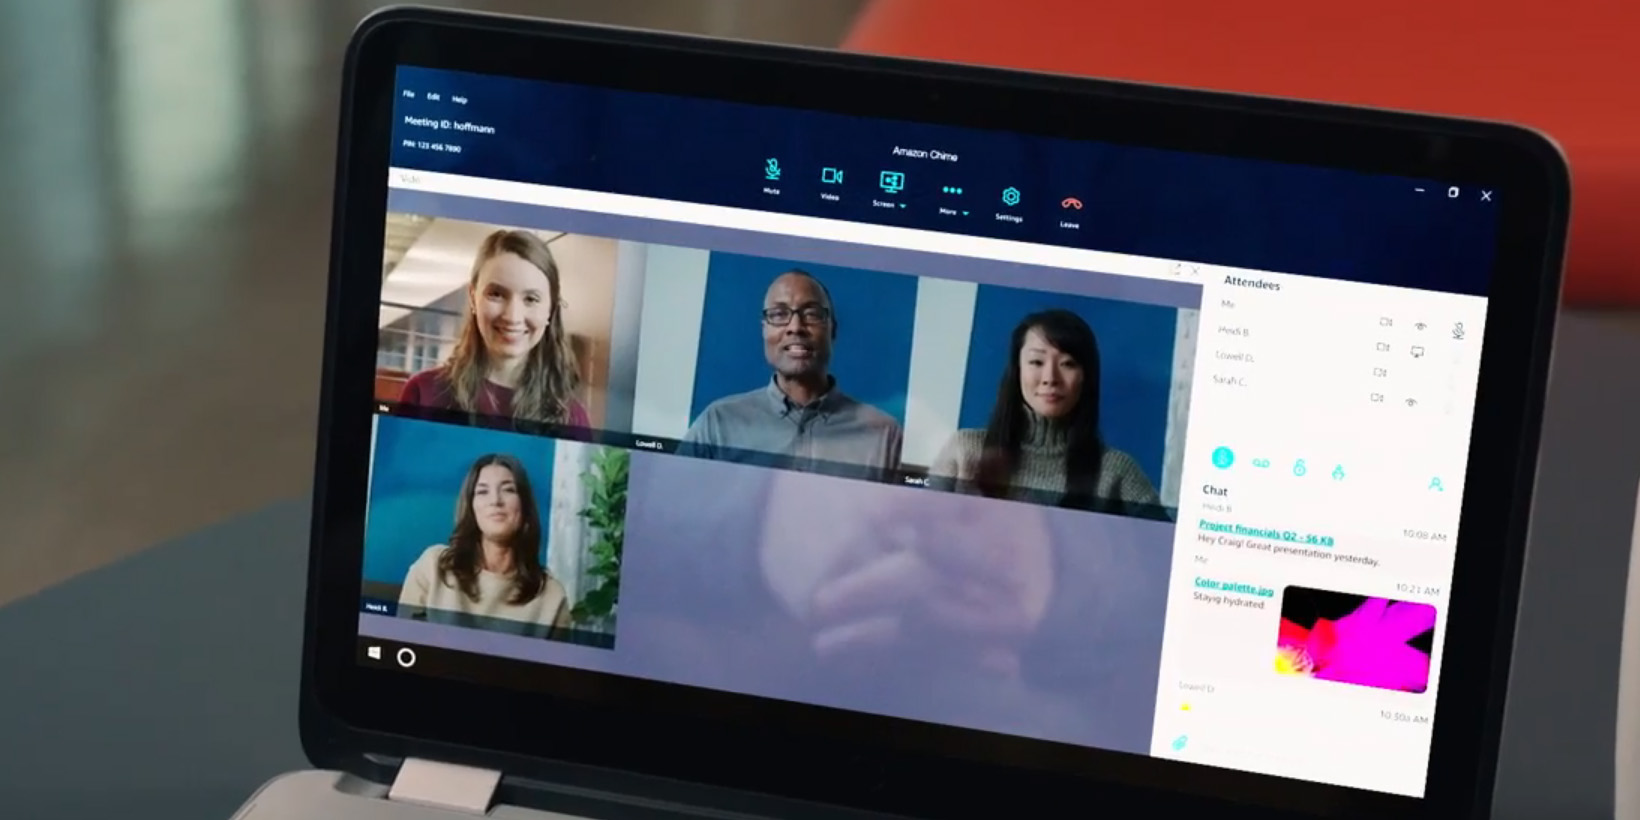 amazon takes on skype and gotomeeting with its chime video